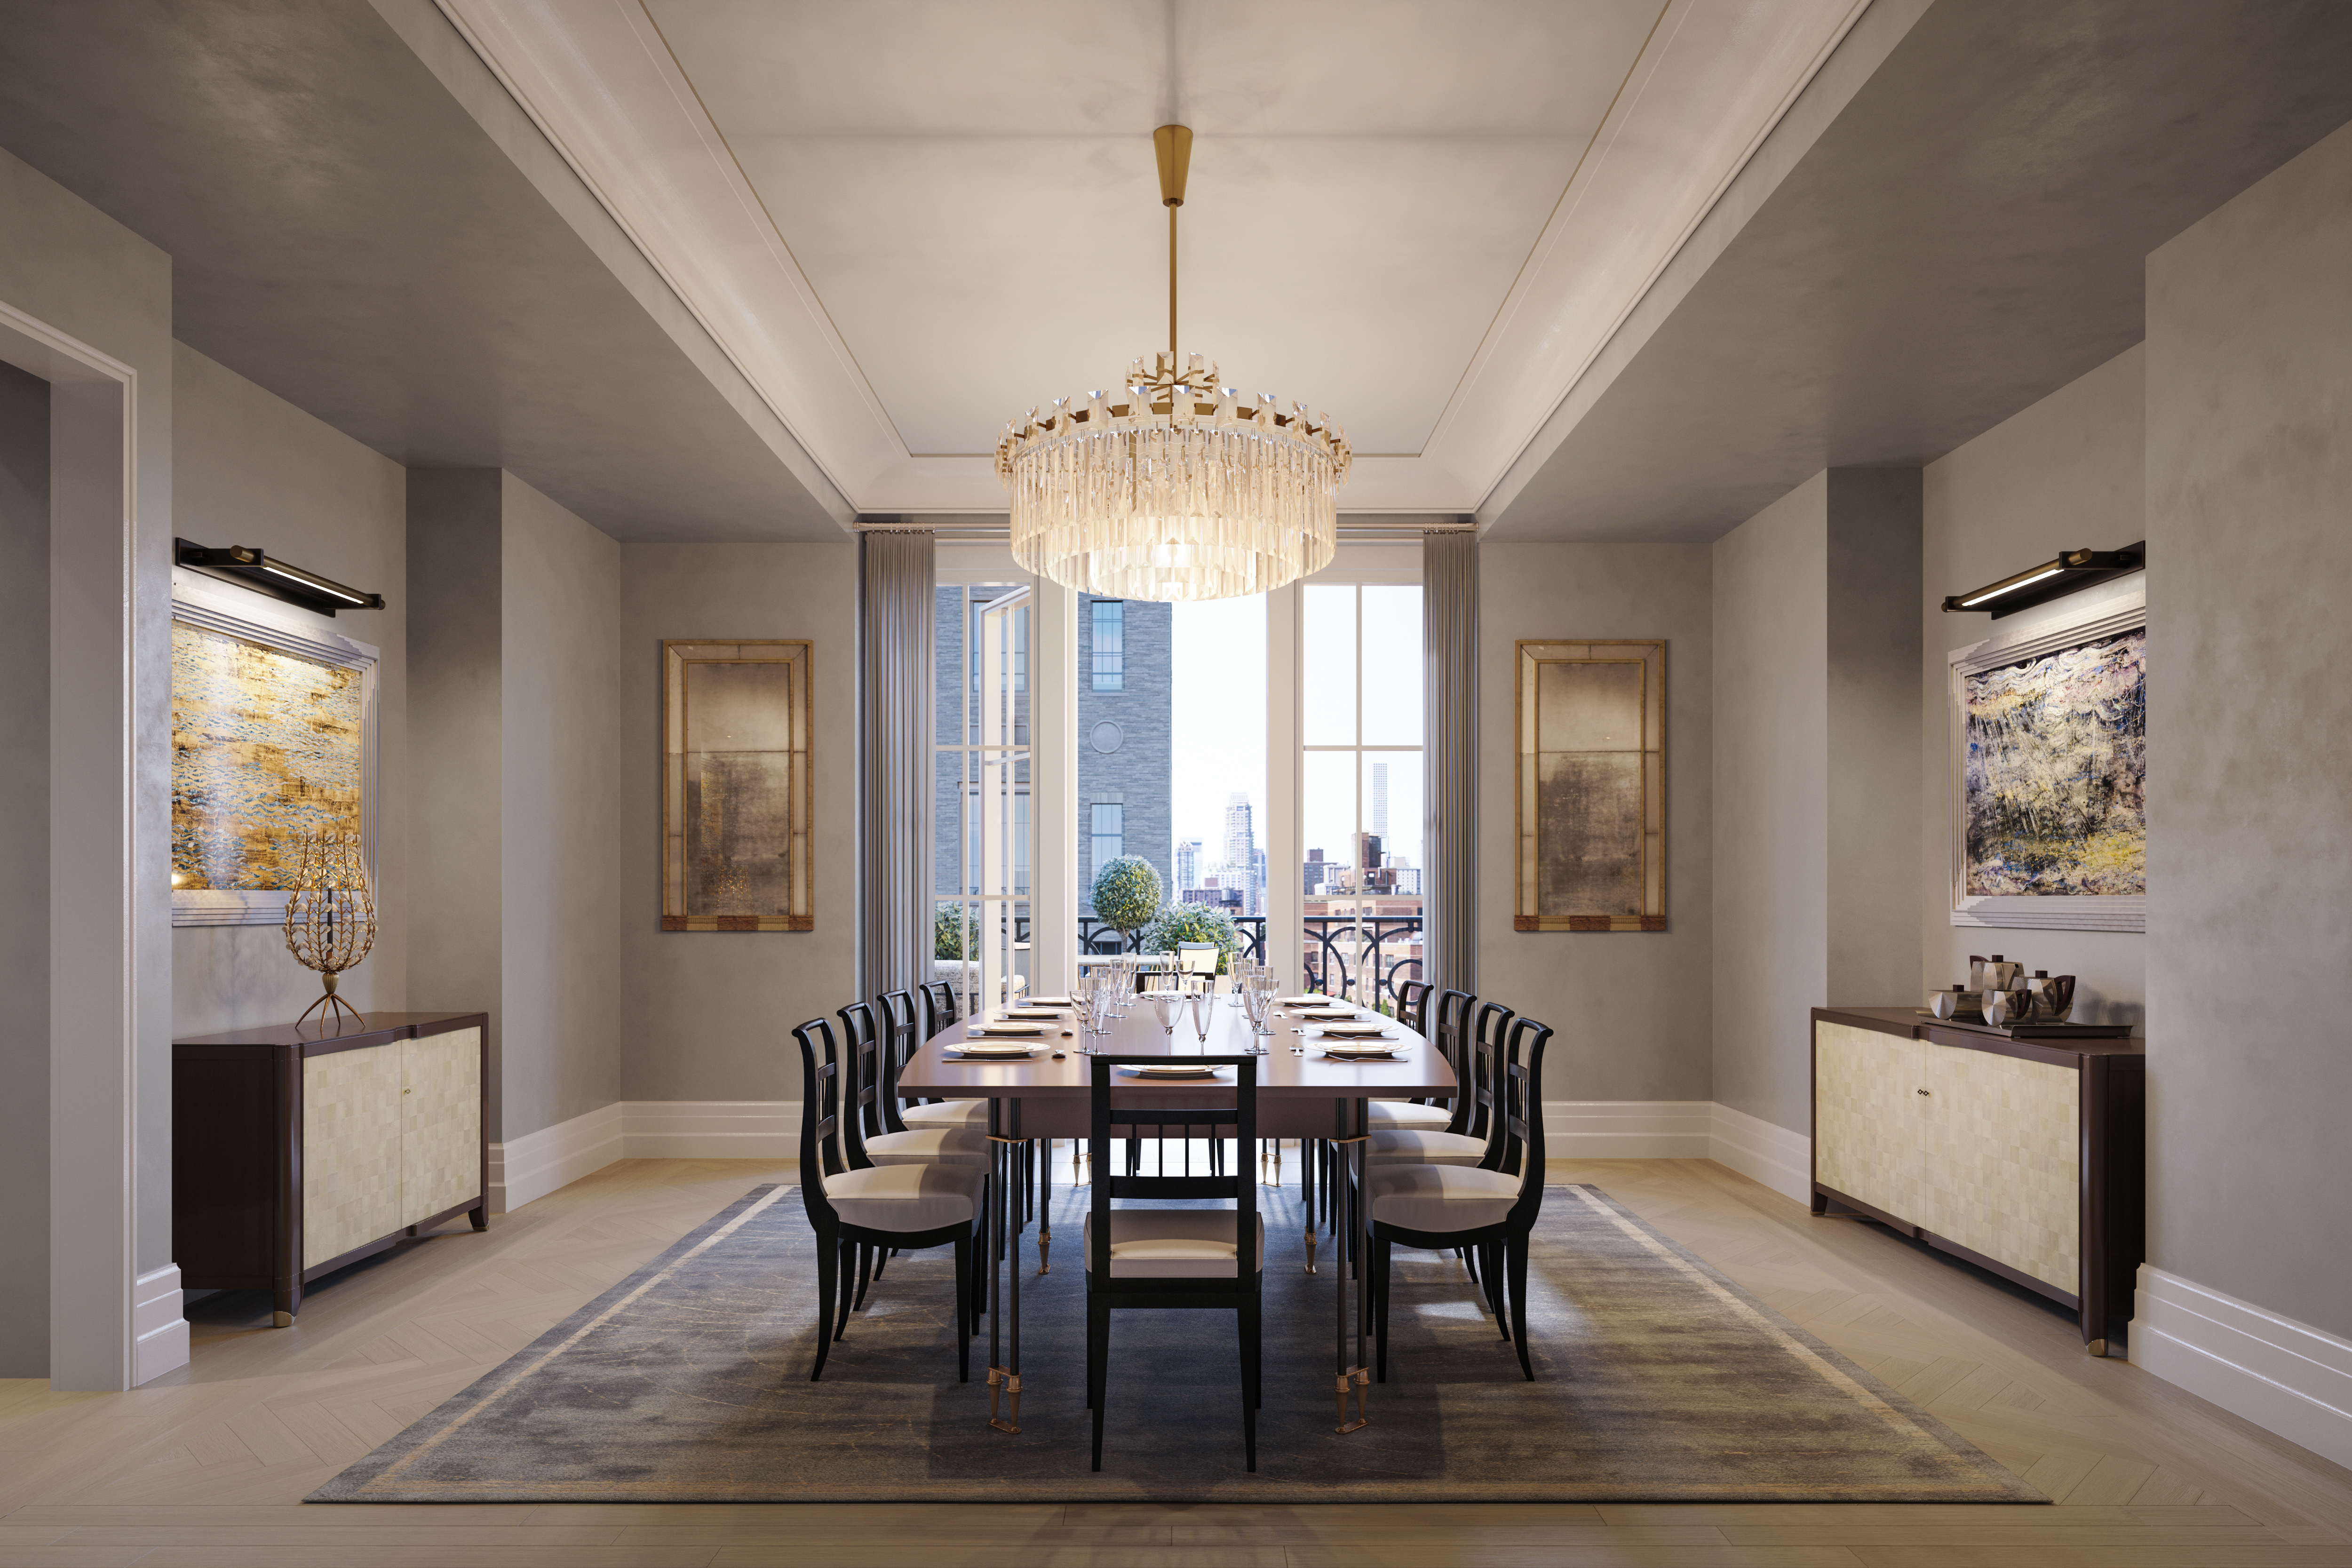 buy dining room set clarity photographs | Want a NYC condo in a new development with a separate ...